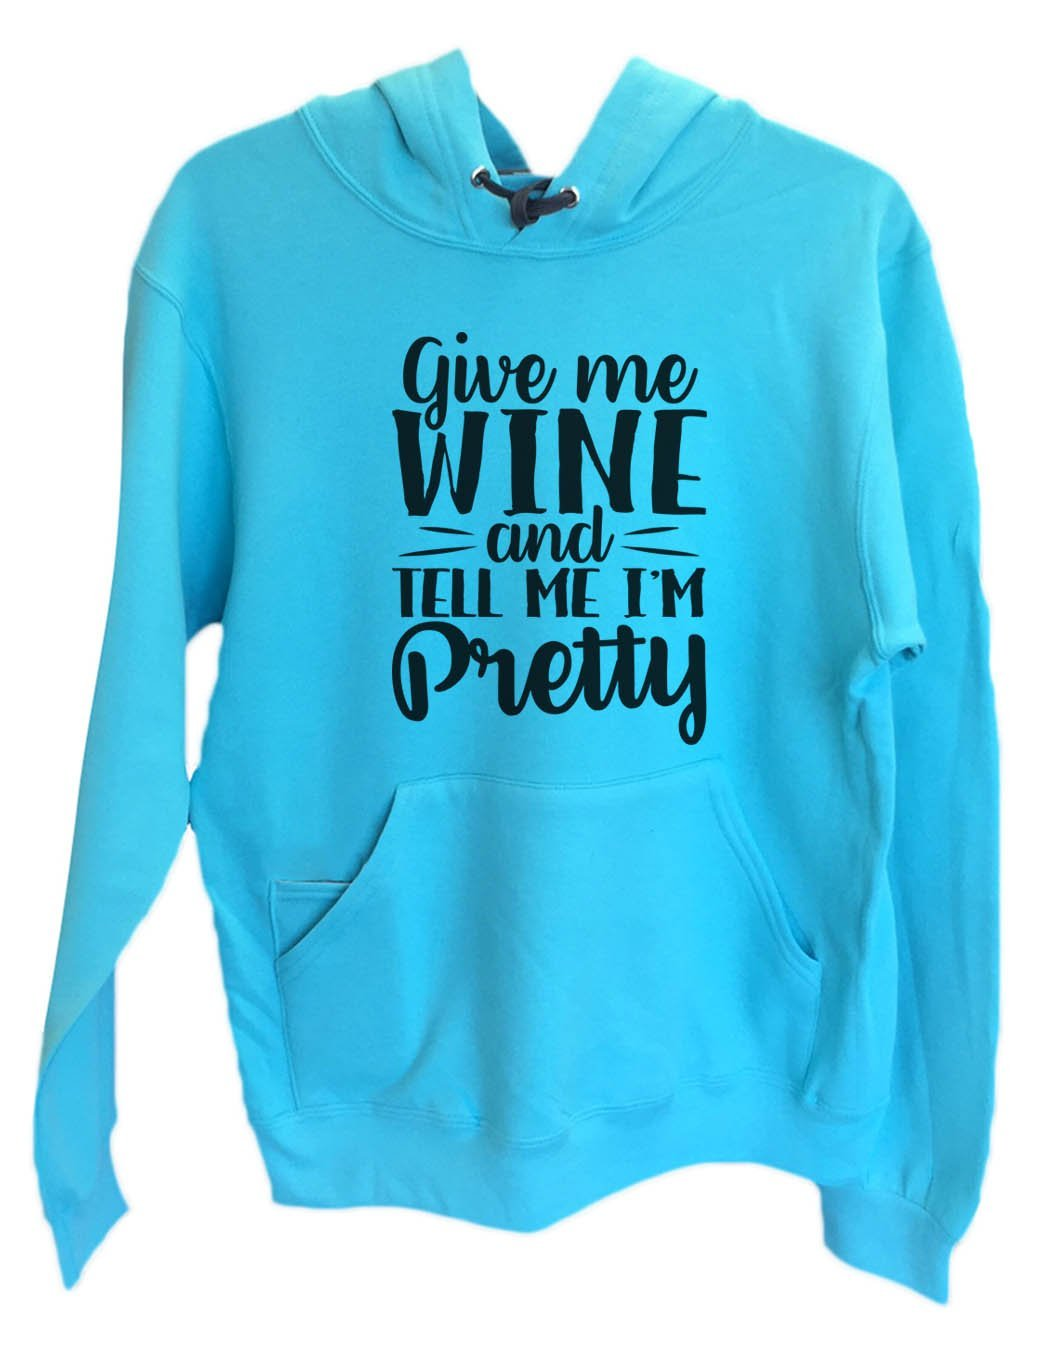 UNISEX HOODIE - Give Me Wine And Tell Me I'm Pretty - FUNNY MENS AND WOMENS HOODED SWEATSHIRTS - 2138 Funny Shirt Small / Turquoise